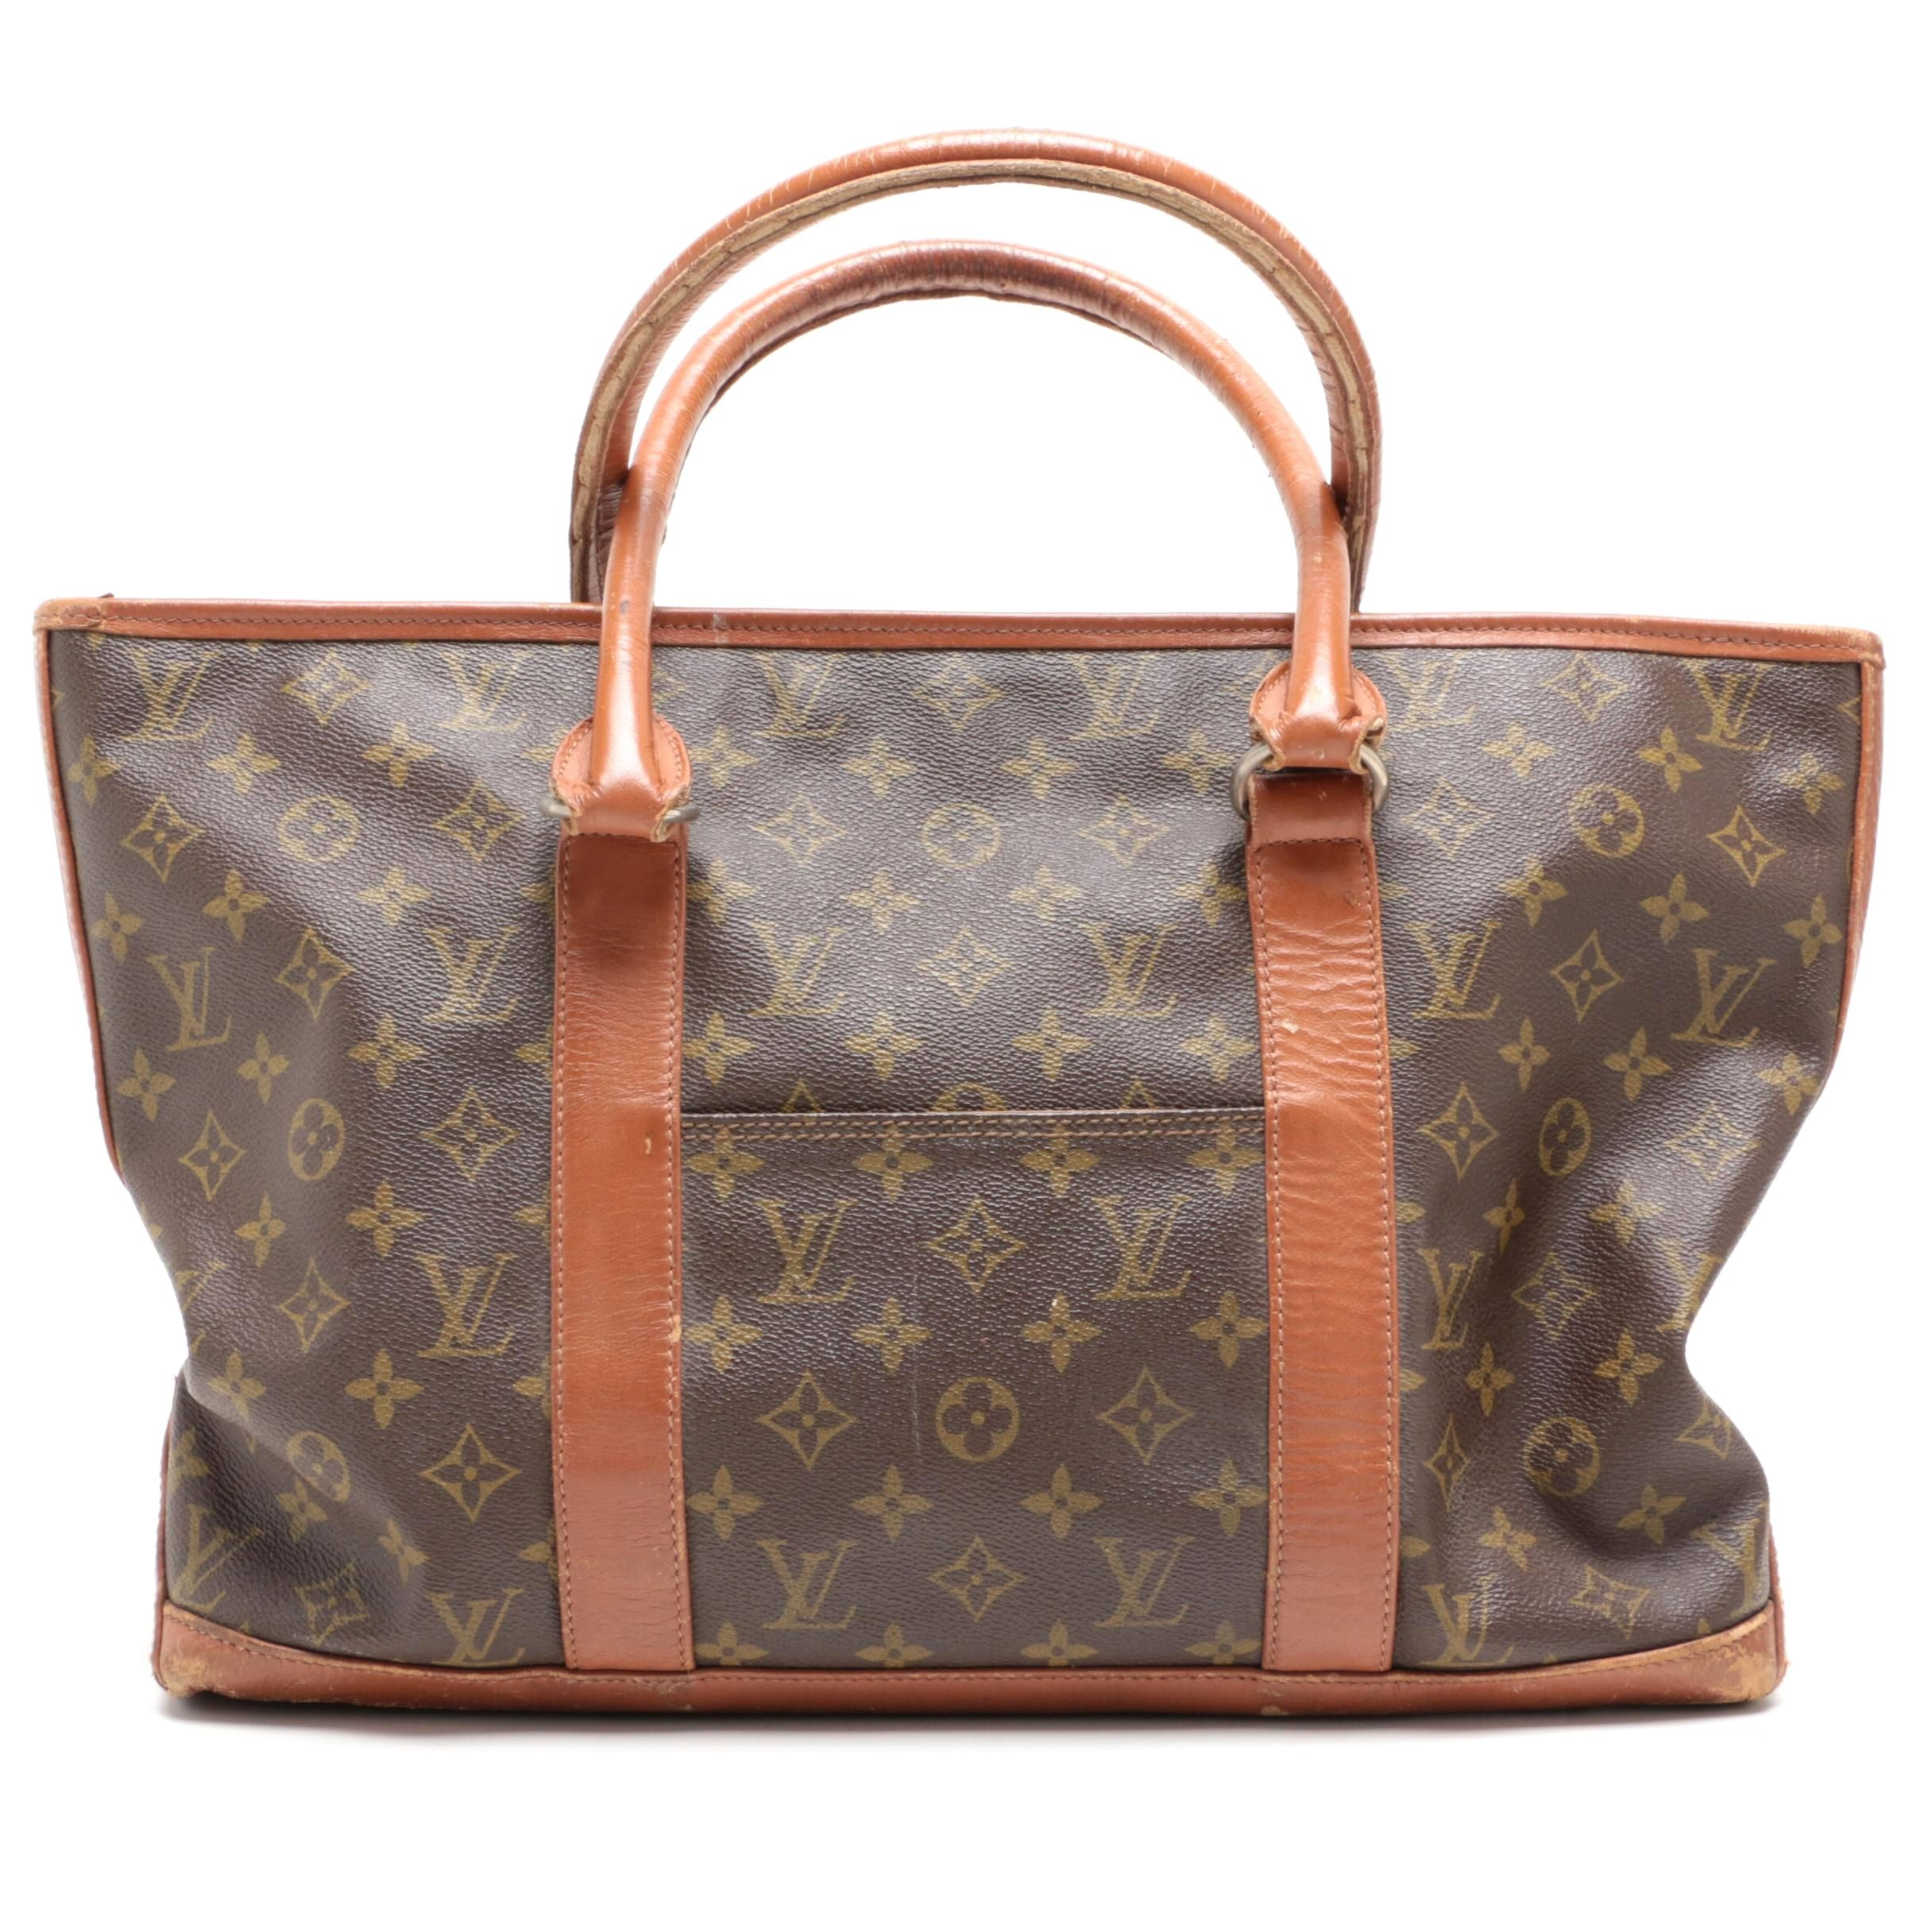 The French Company for Louis Vuitton Monogram Canvas Top Handle Tote Handbag